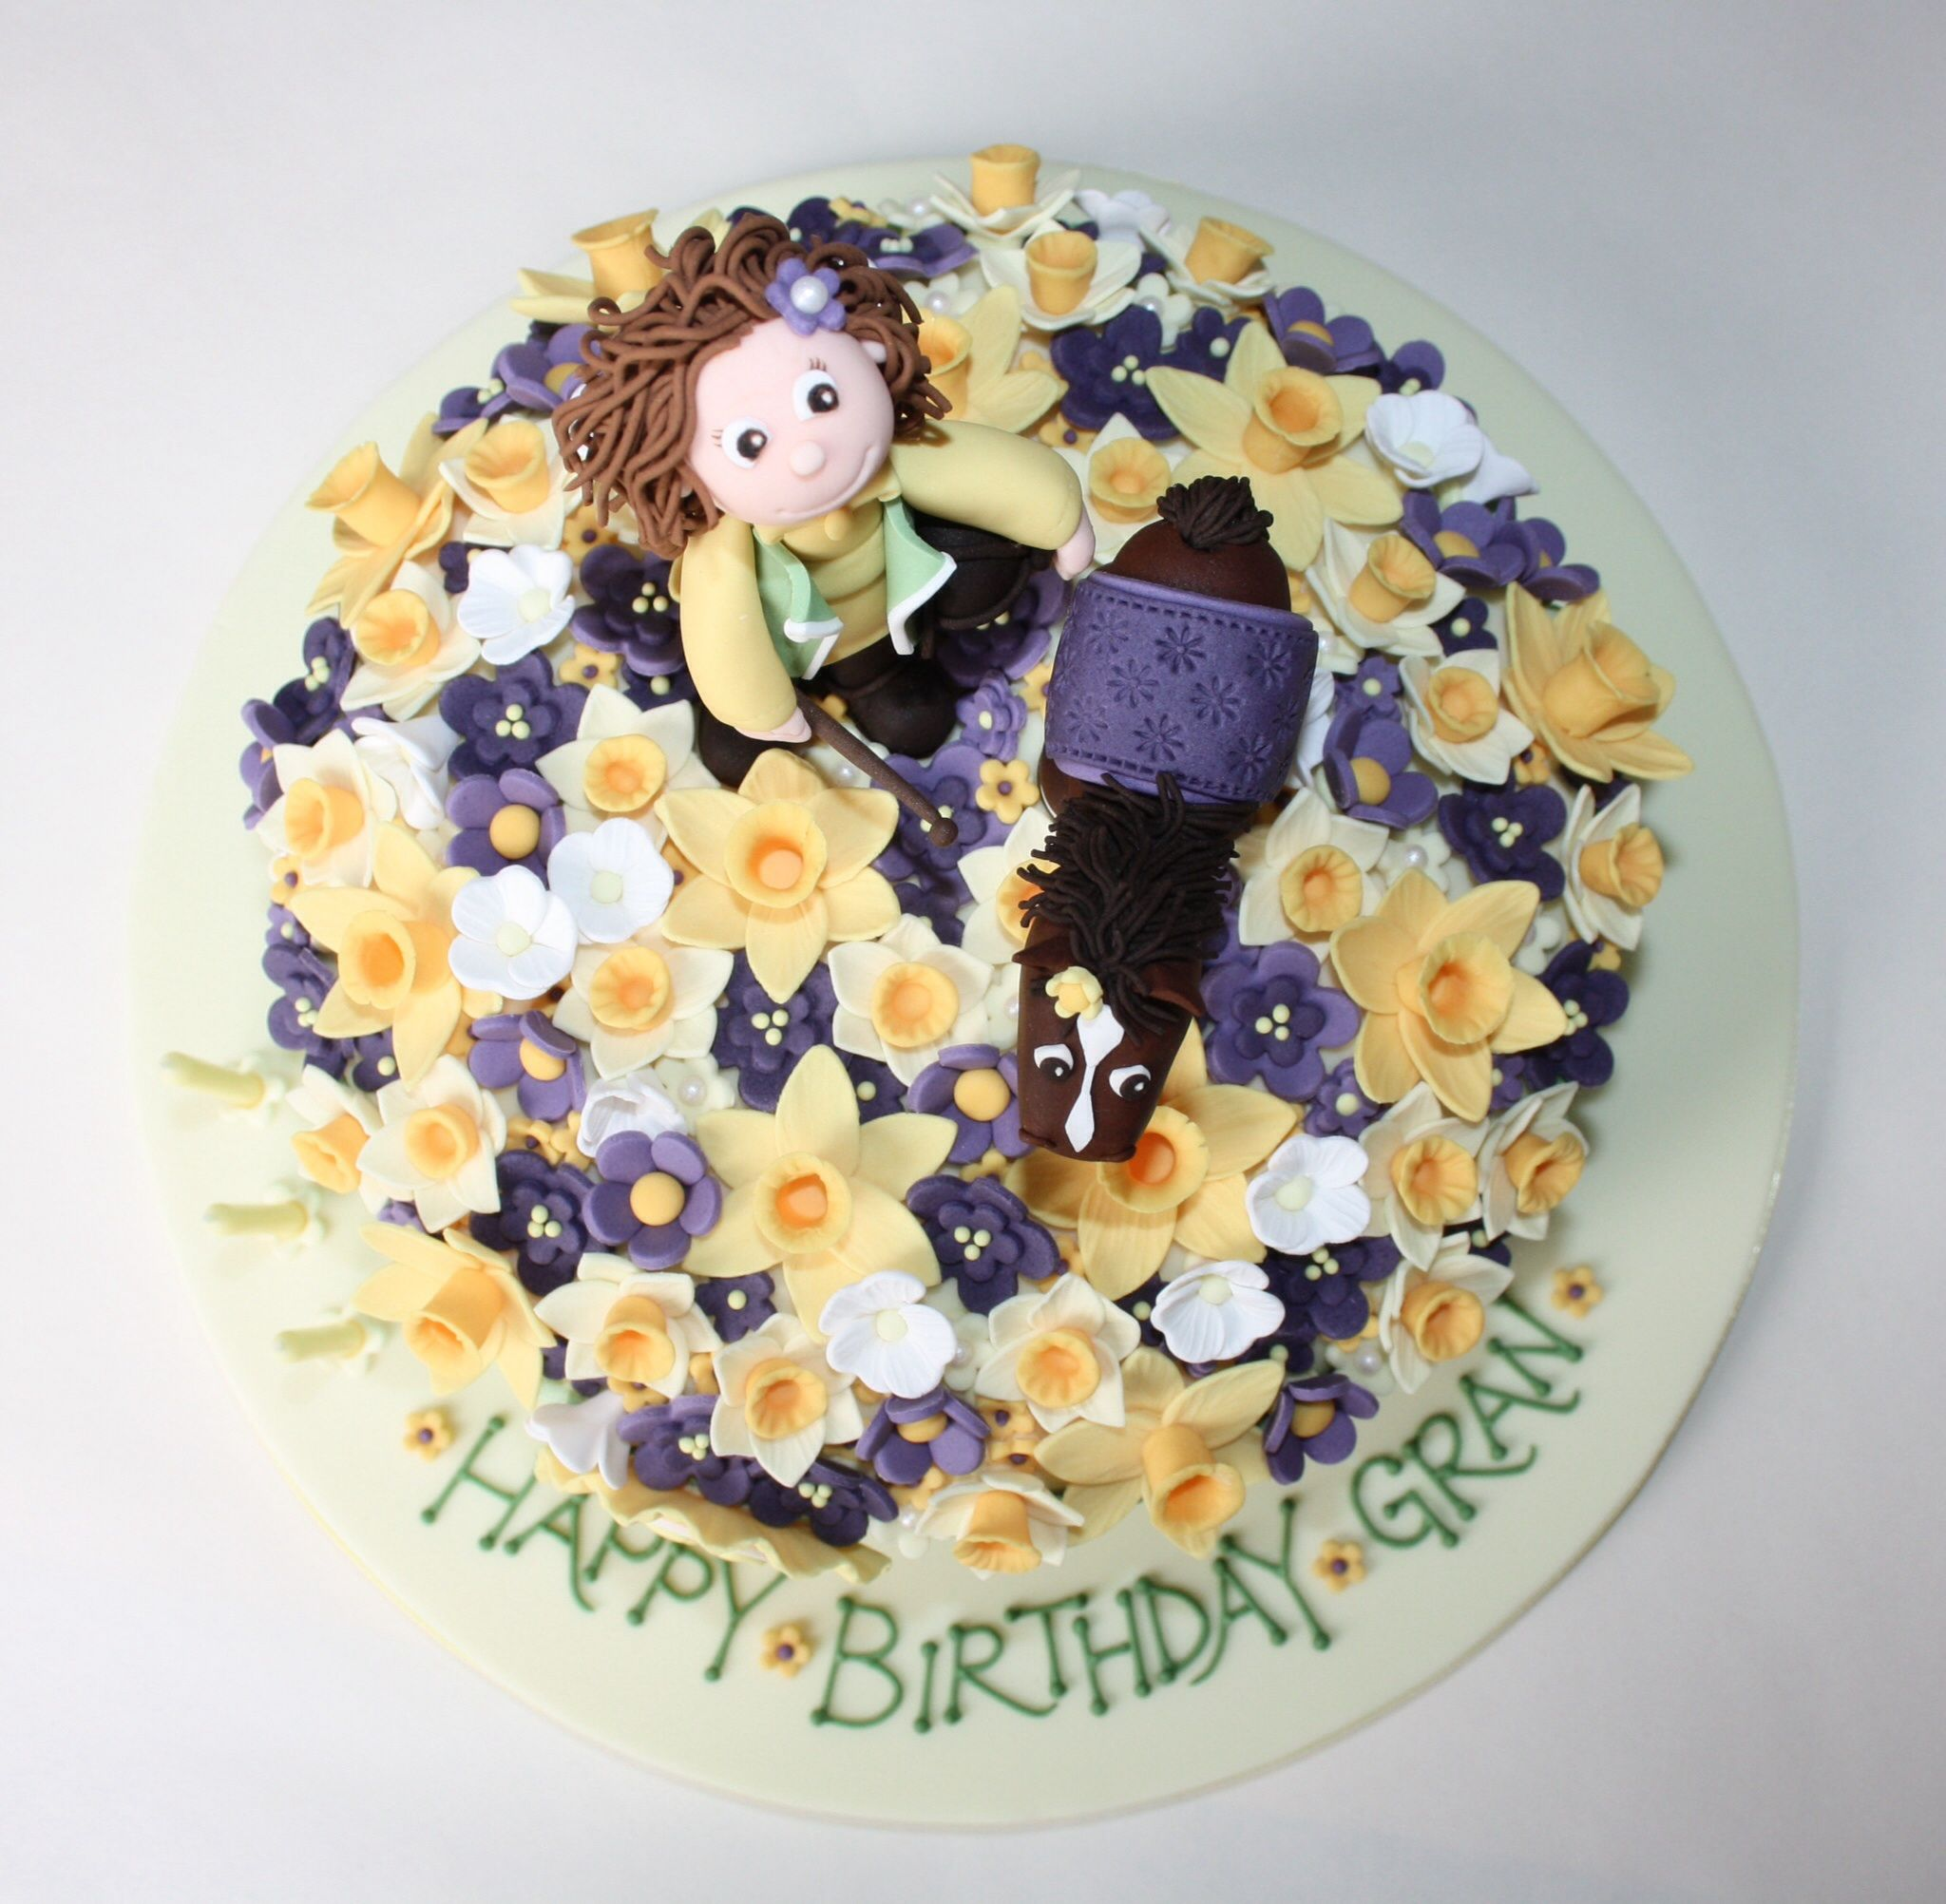 Top view of the 60th birthday cake I made for my friend's mum. A little horse and rider standing in a field of purple and yellow spring flowers with a few daffodills.